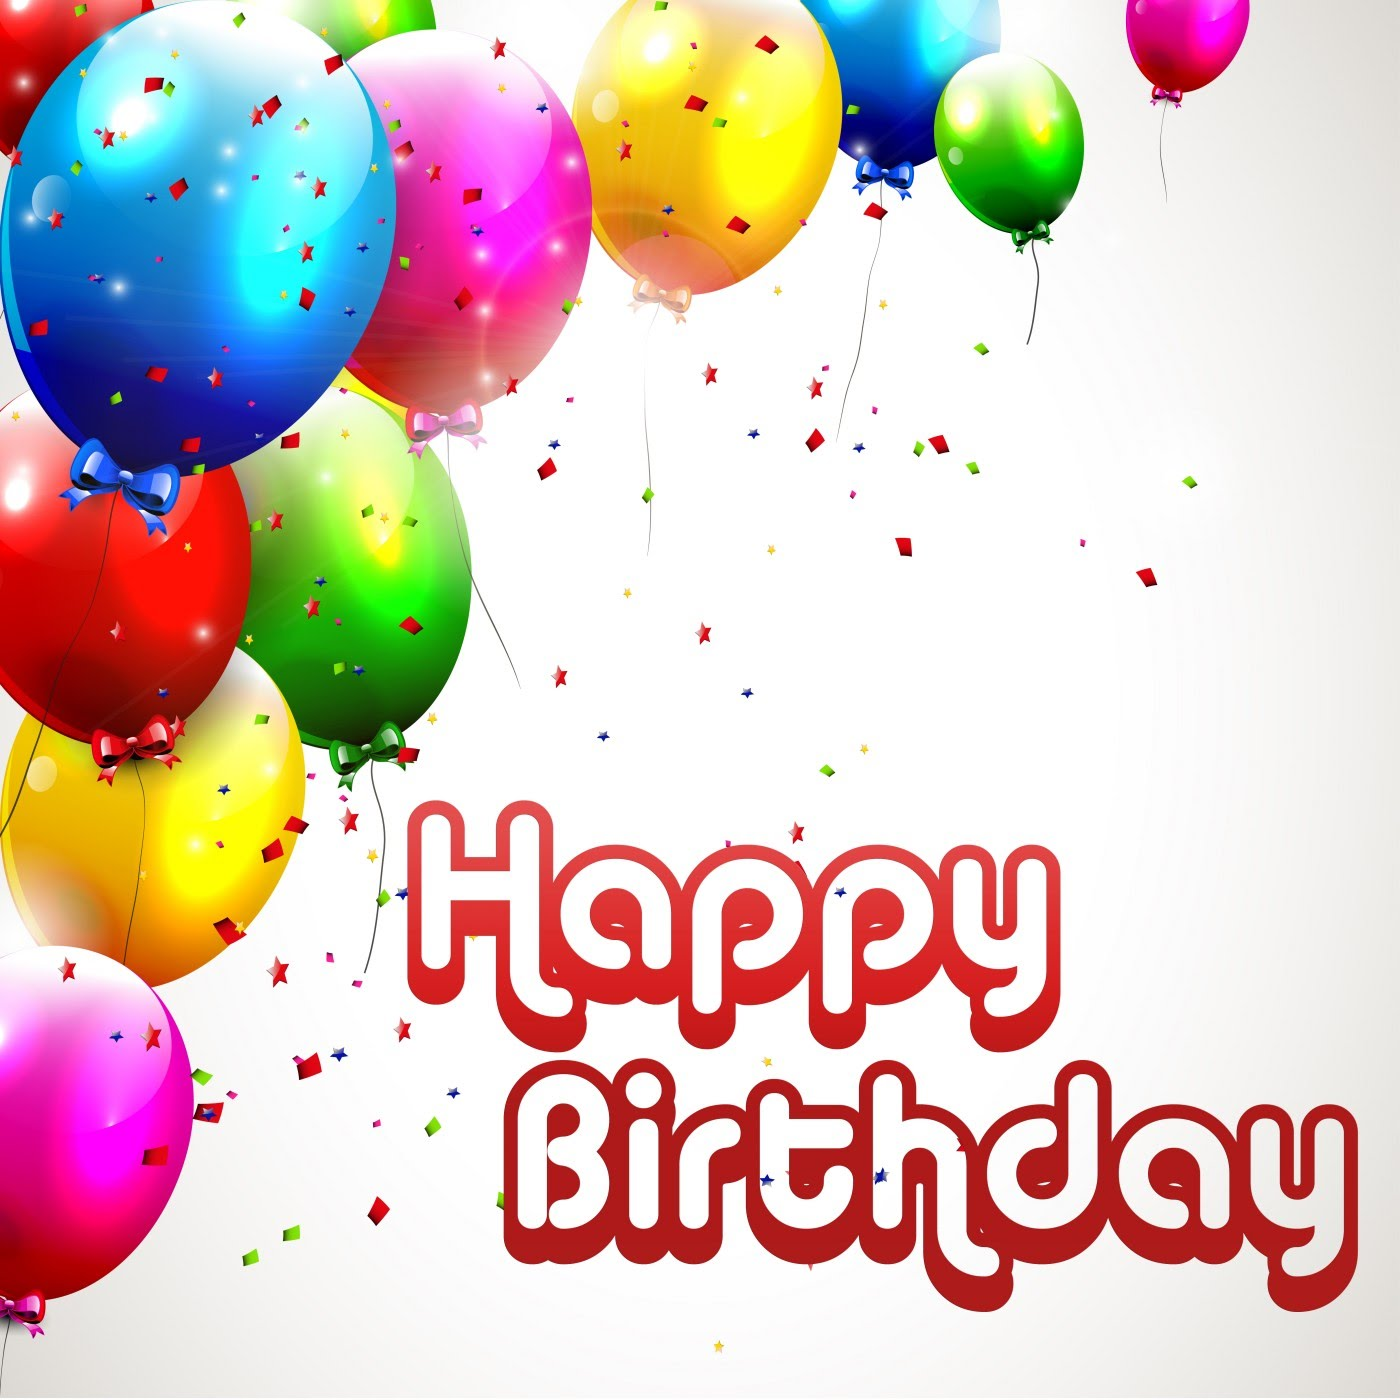 happy birthday and wish you all the best ; maxresdefault